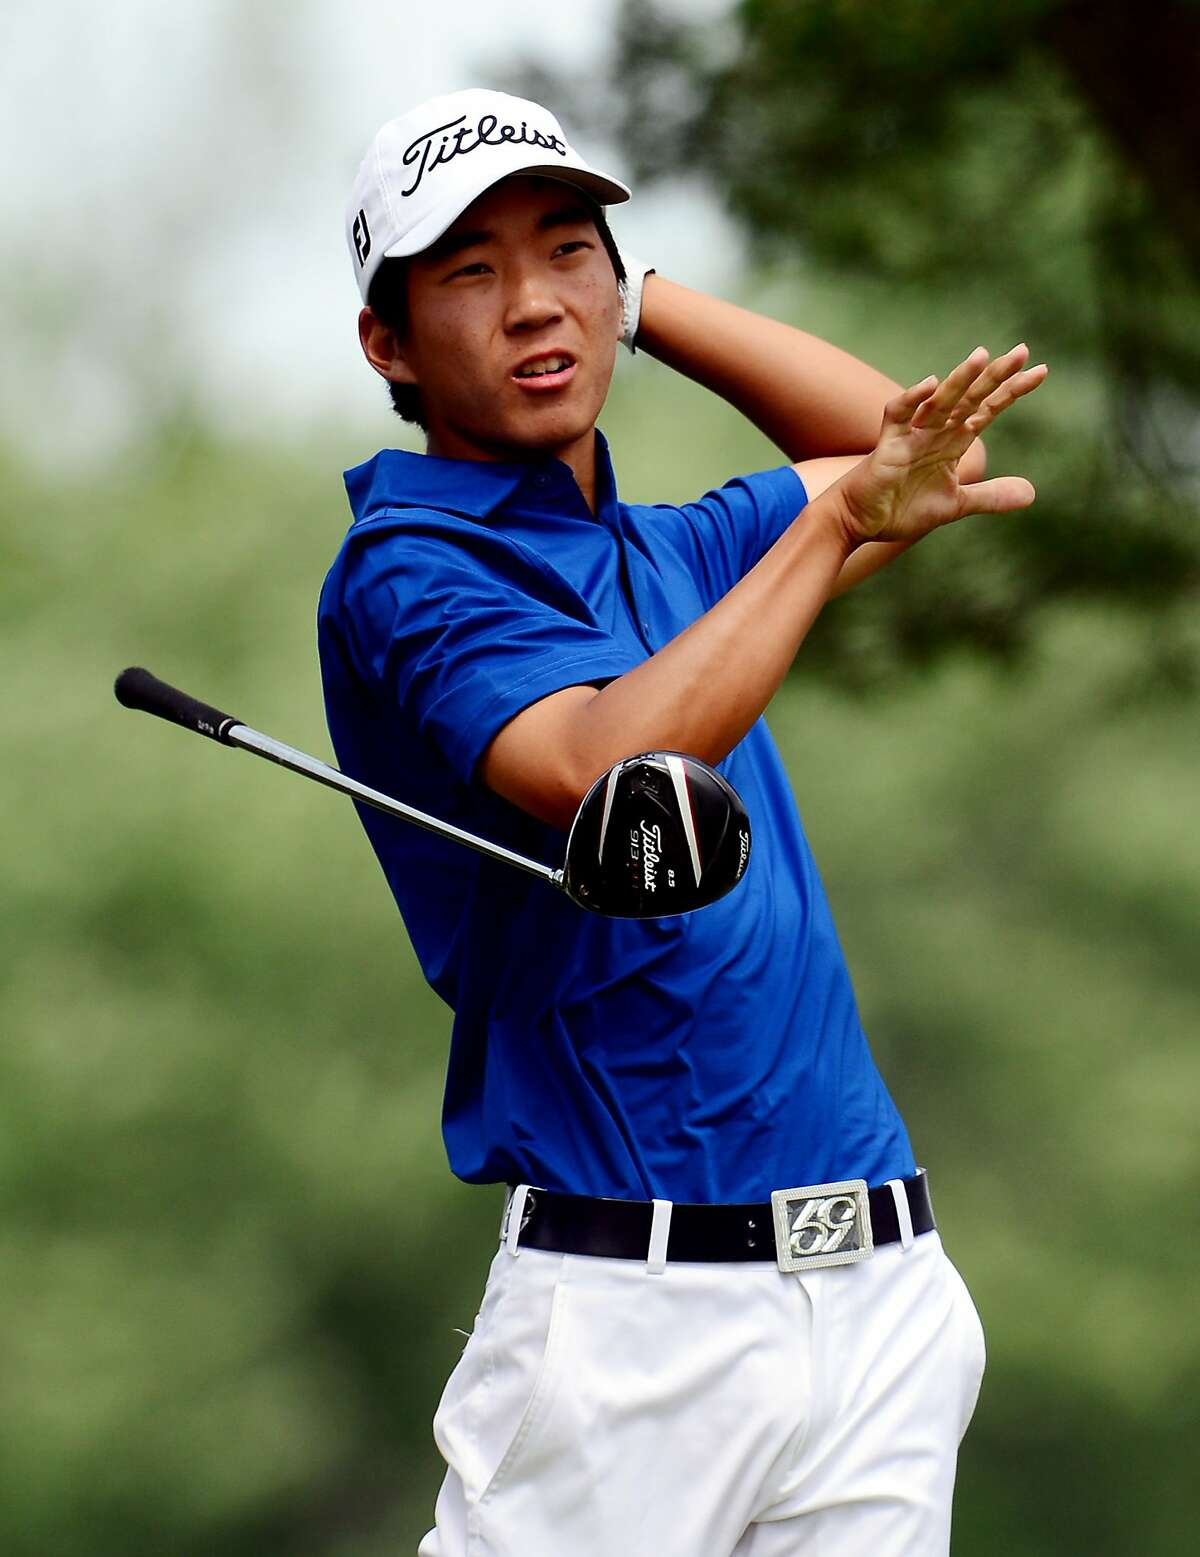 ARDMORE, PA - JUNE 16: Amateur Michael Kim of the United States lets go of his club after hitting his tee shot on the fifth hole during the final round of the 113th U.S. Open at Merion Golf Club on June 16, 2013 in Ardmore, Pennsylvania. (Photo by David Cannon/Getty Images)